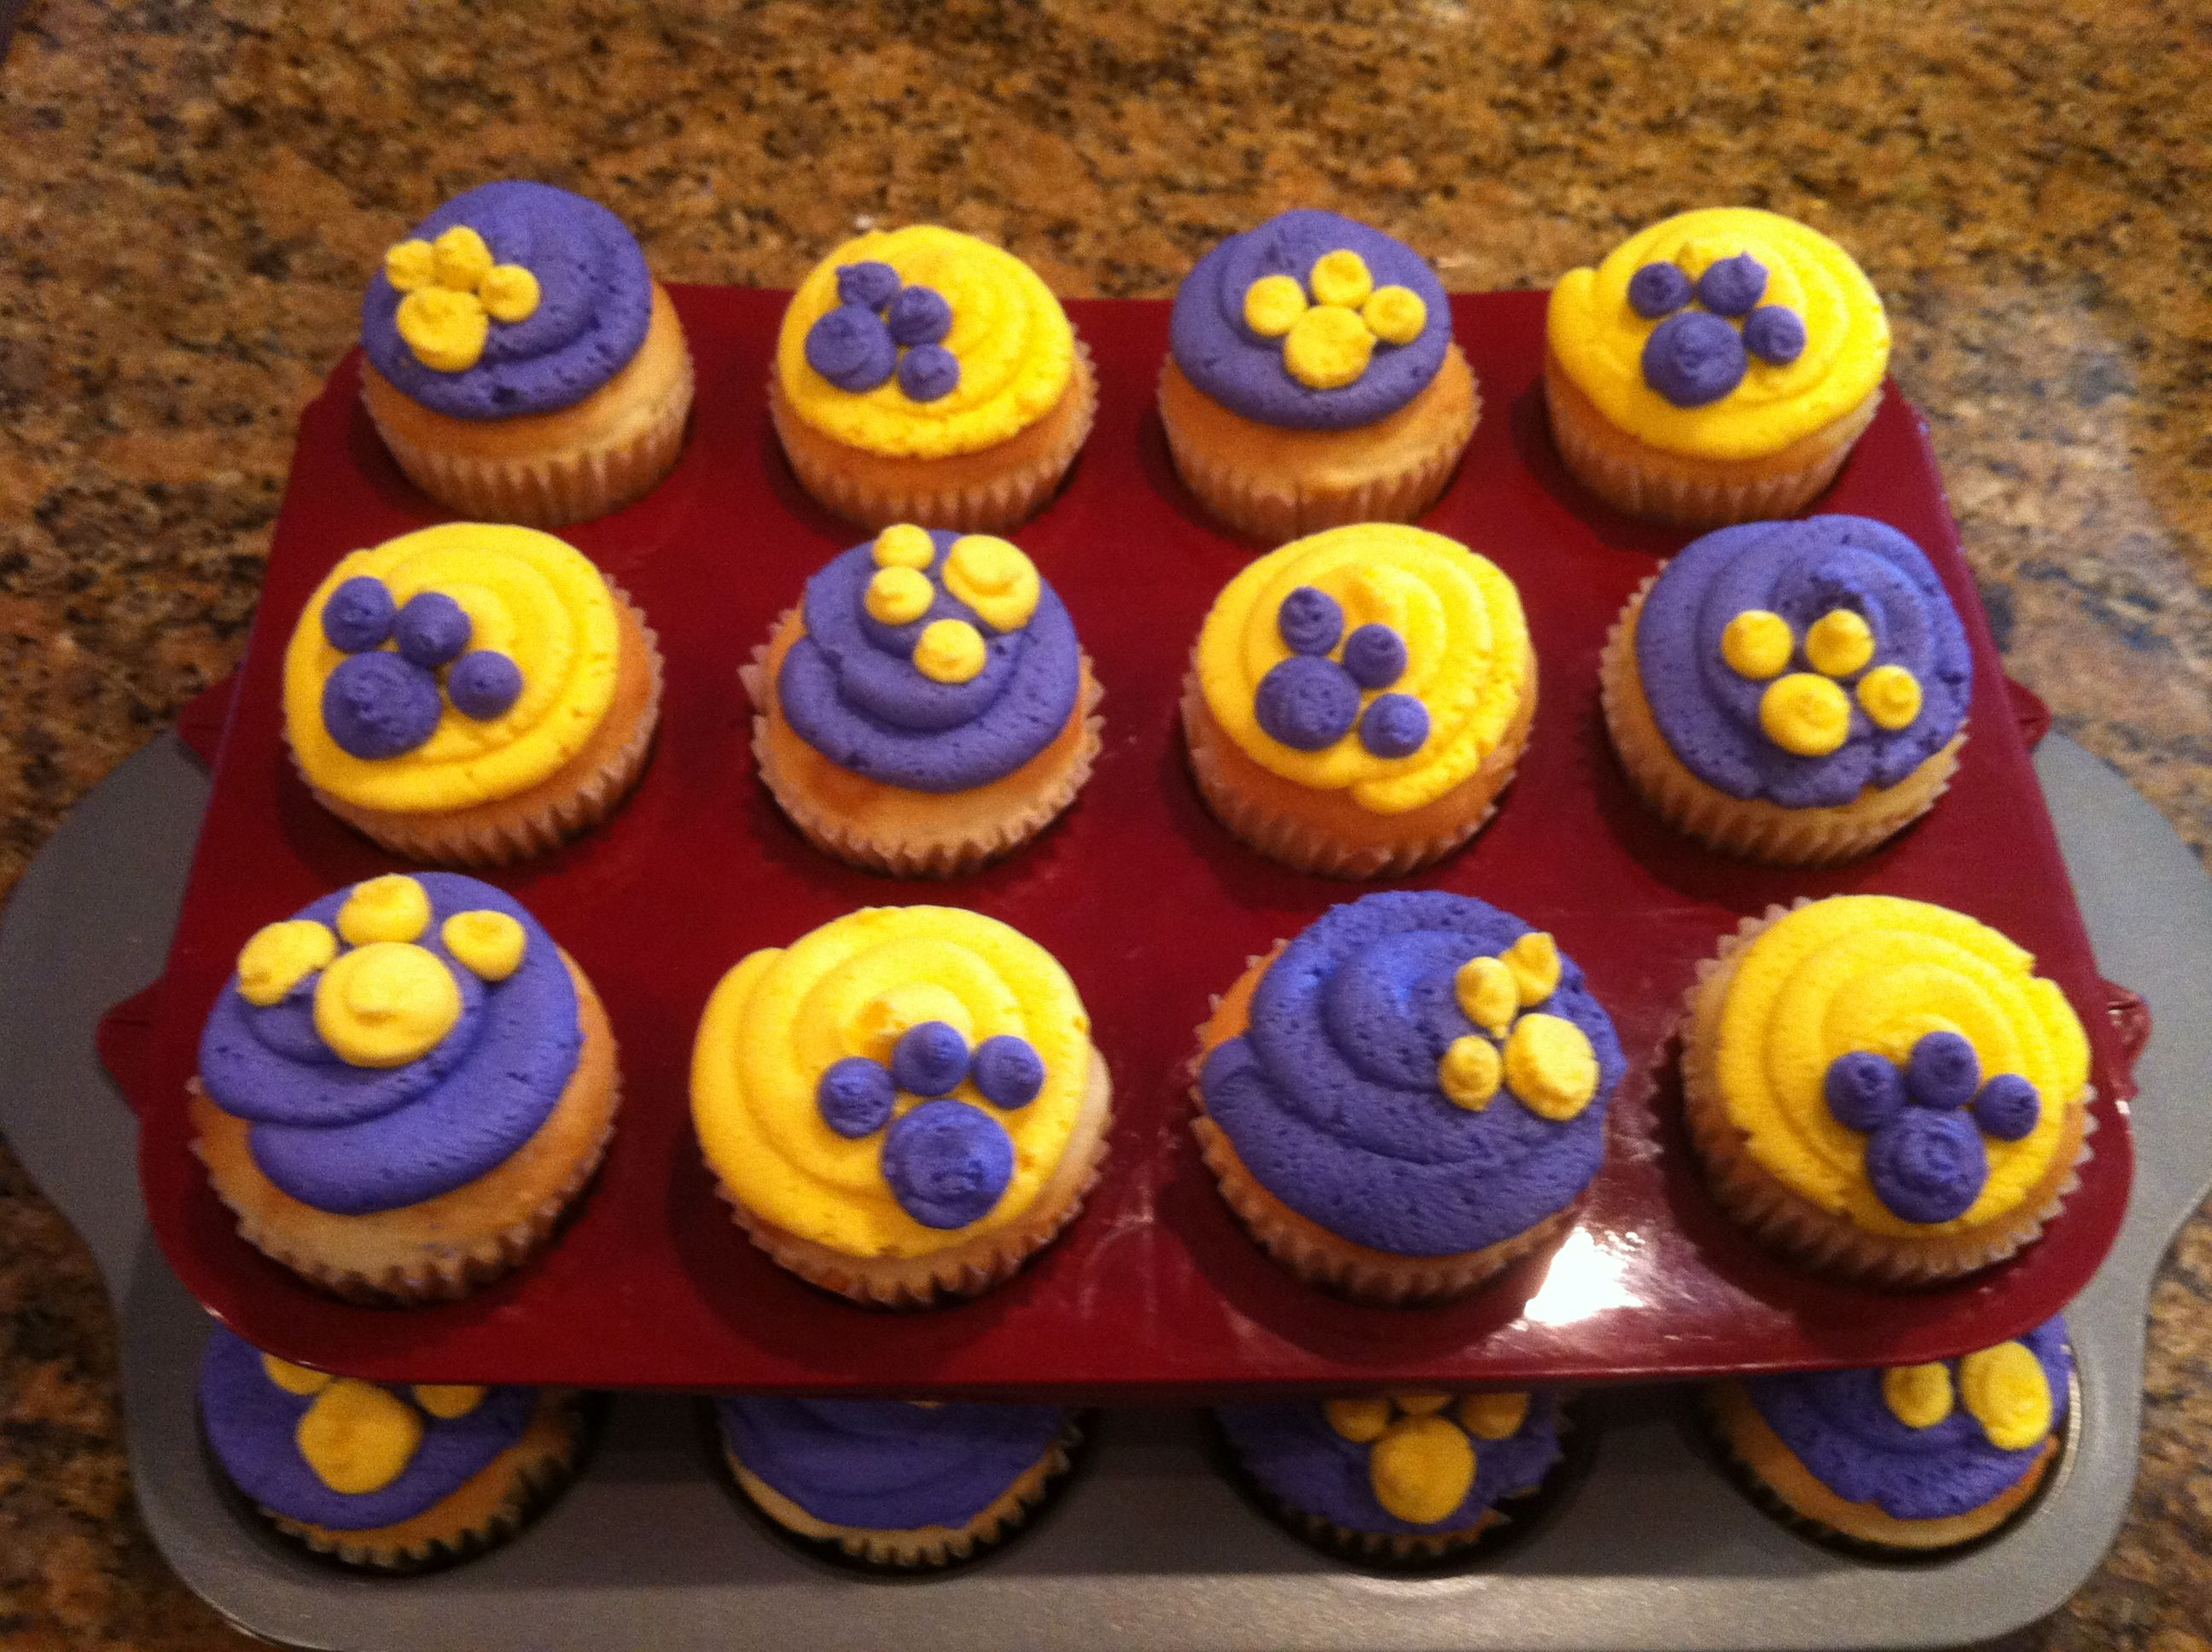 LSU cupcakes | Dessert | Pinterest | Cake, Food and Tiger cake